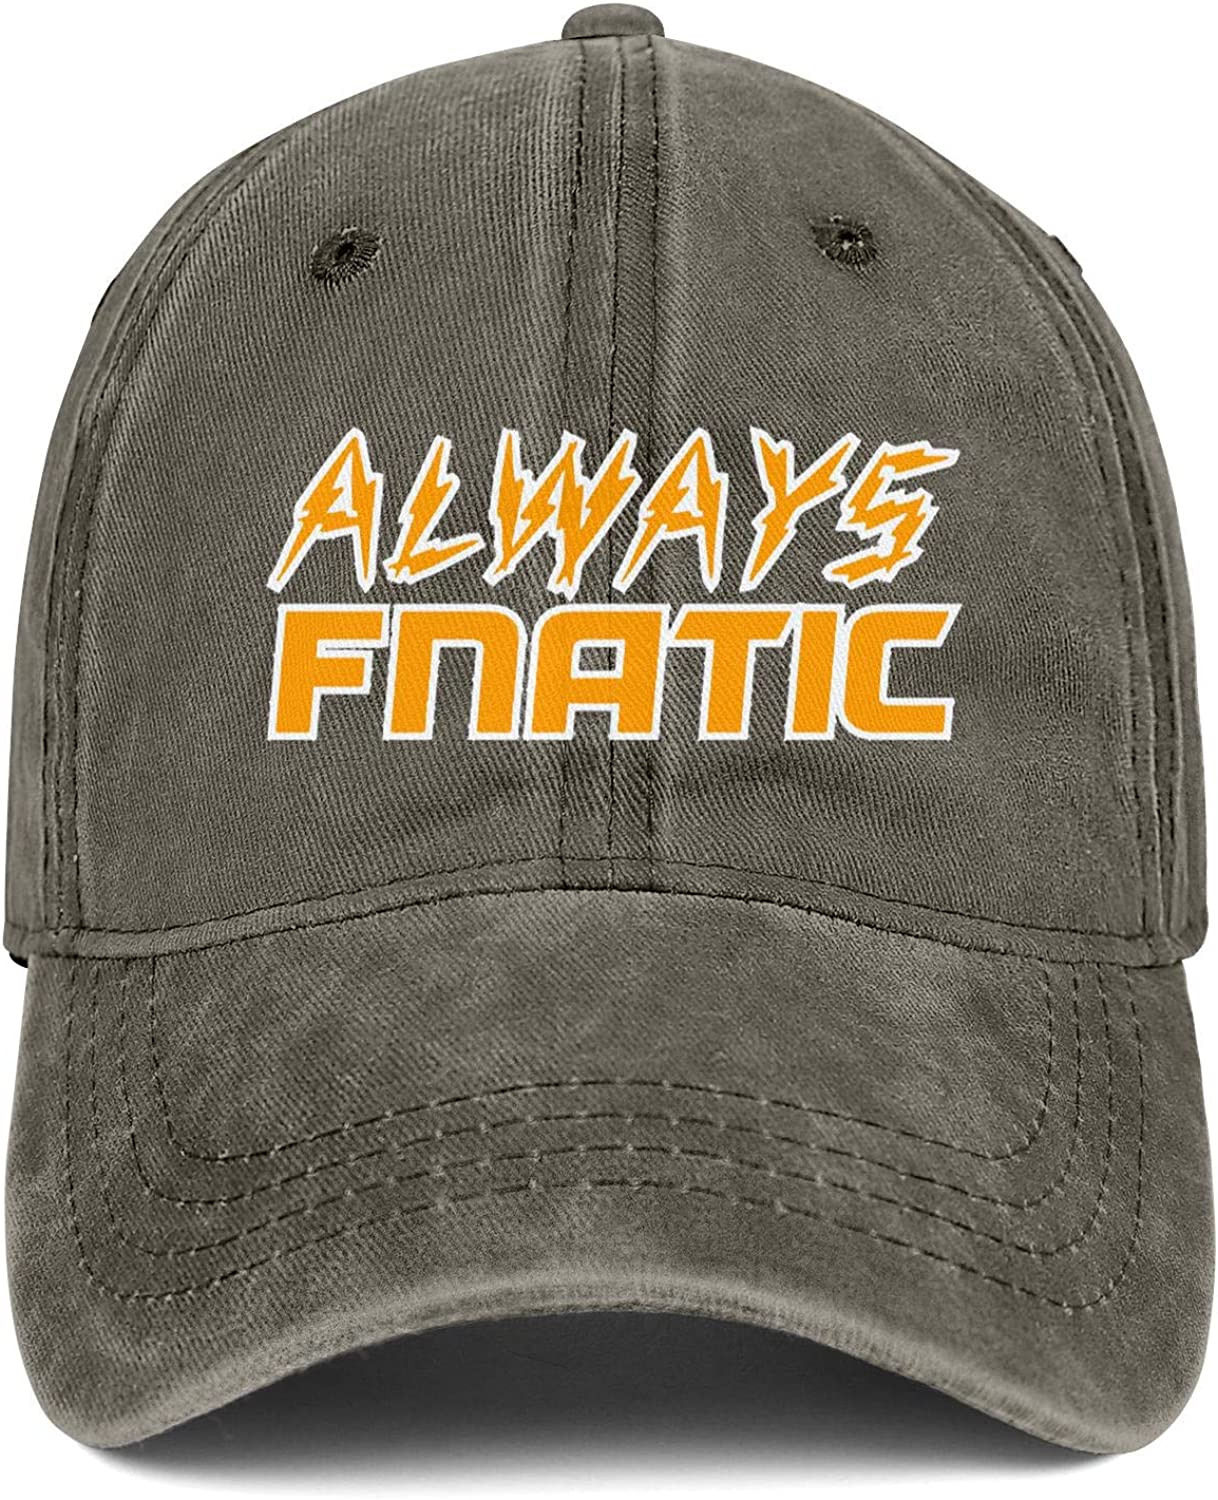 Unisex Always Fnatic Fits Cowboy Hat Superlite Skull Cap Dad Hat